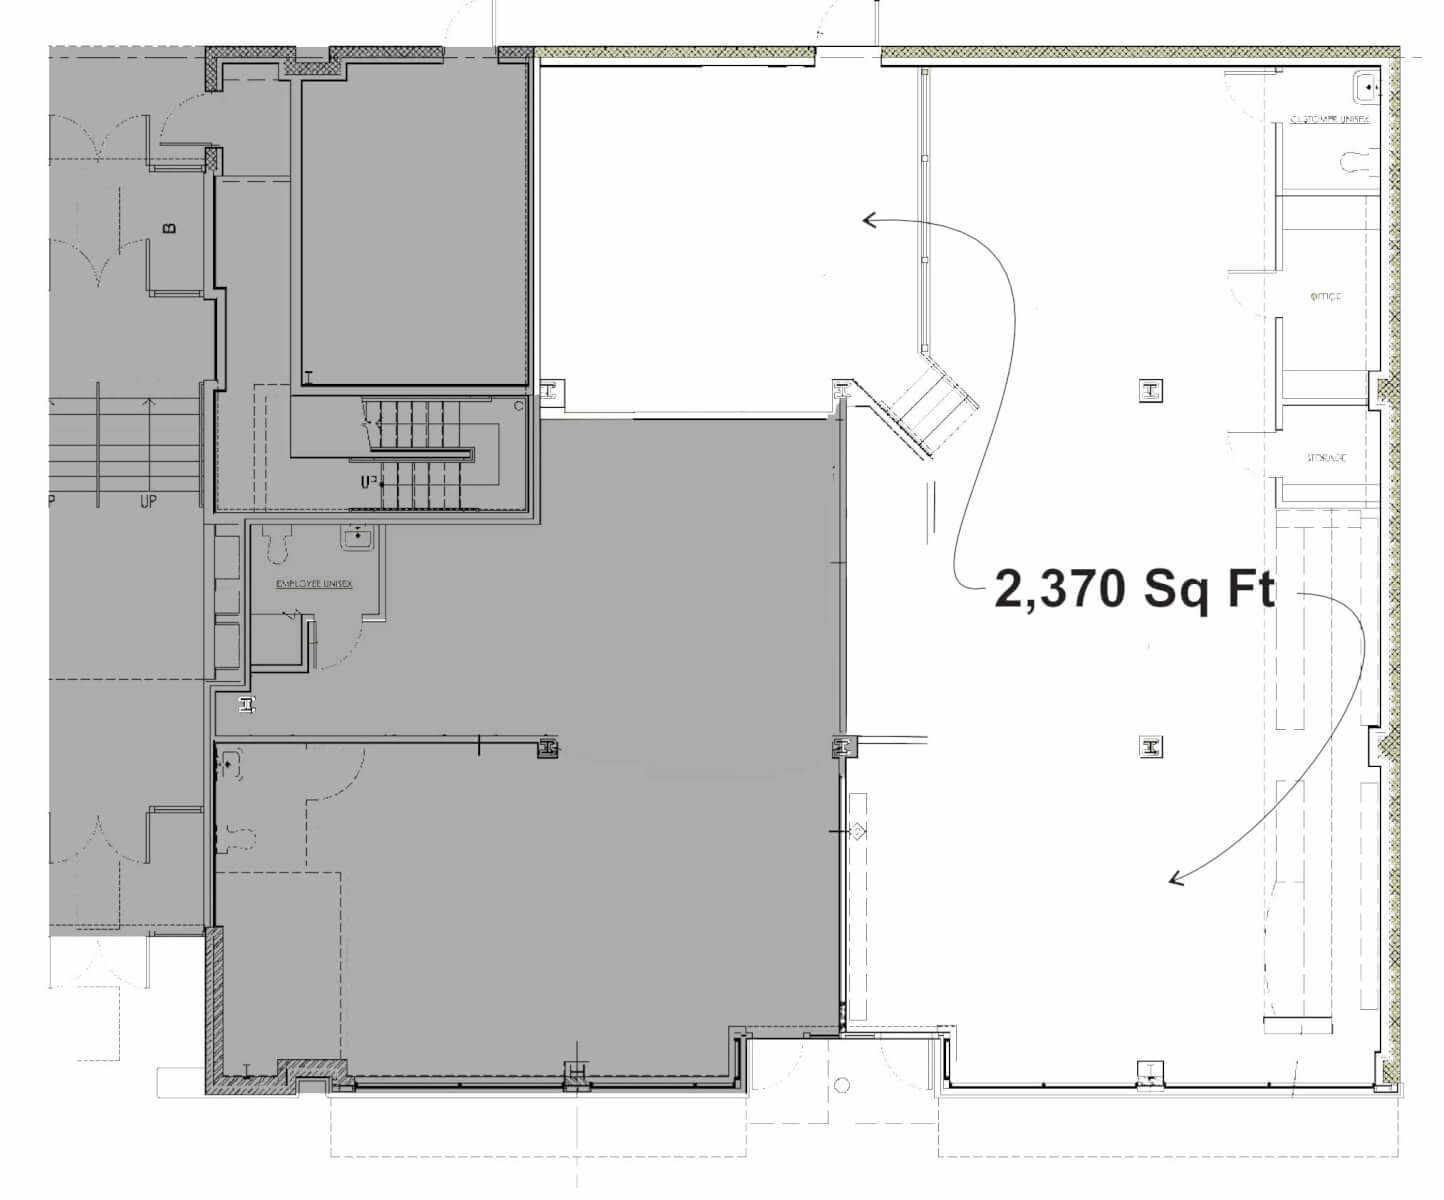 661 South Avenue commercial space floorplan